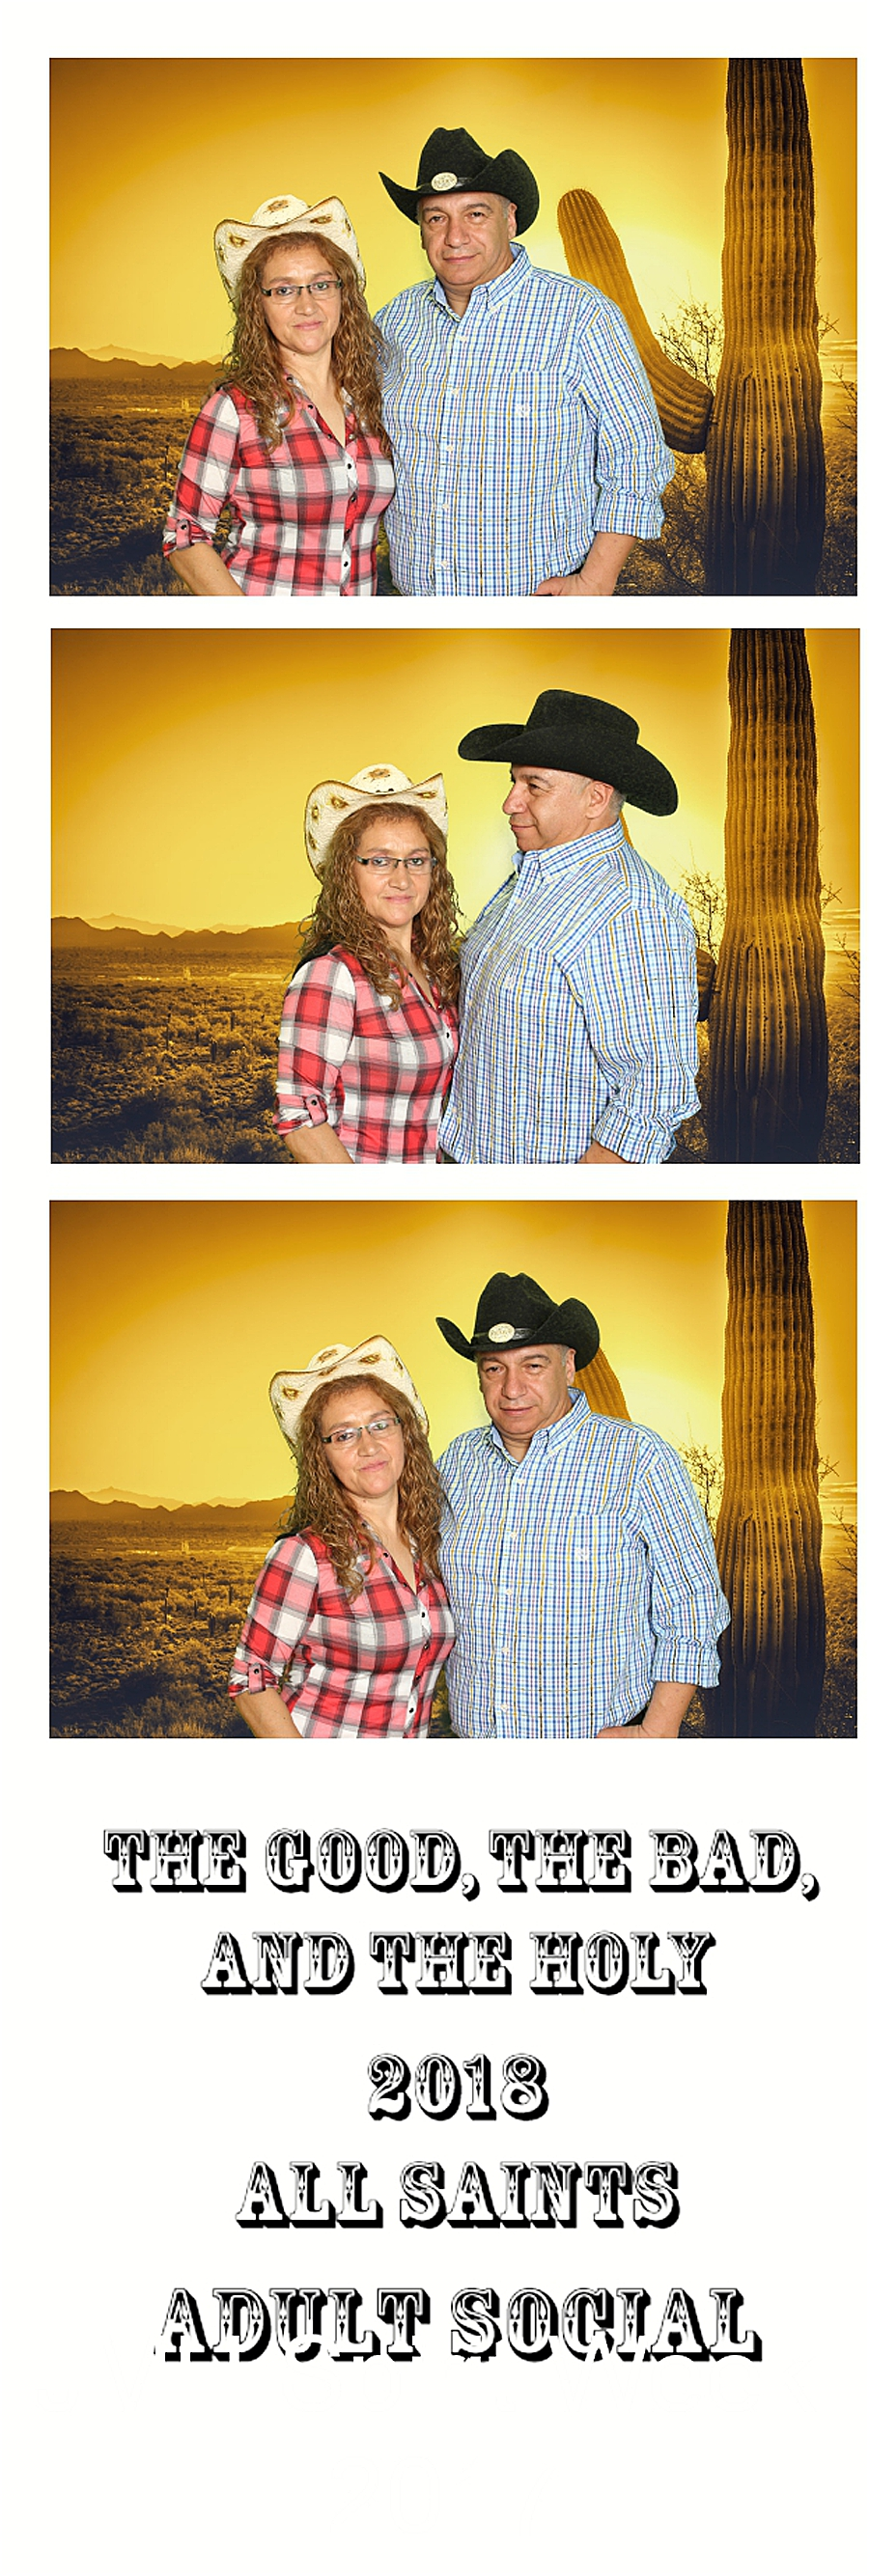 Knoxville Photo Booth_1317.jpg